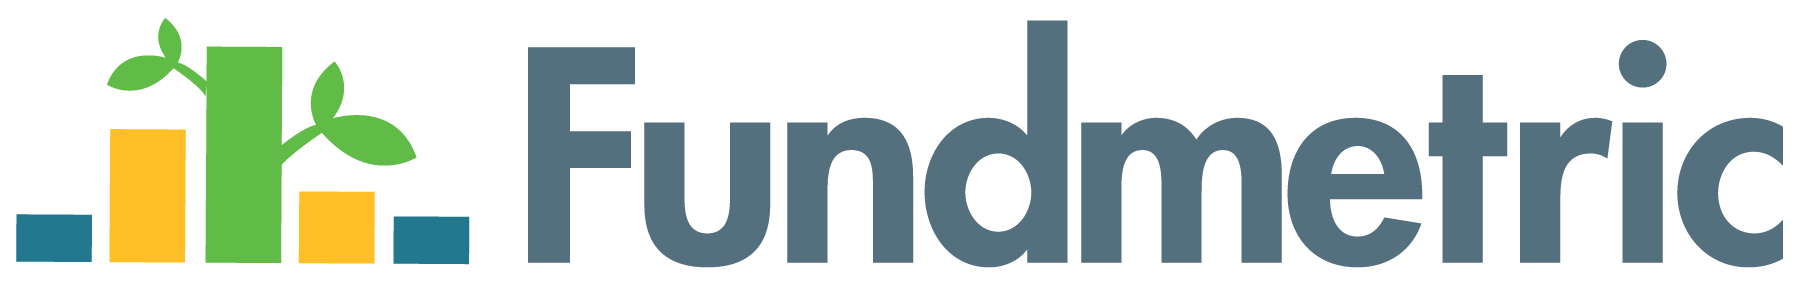 fundmetric logo-02.png